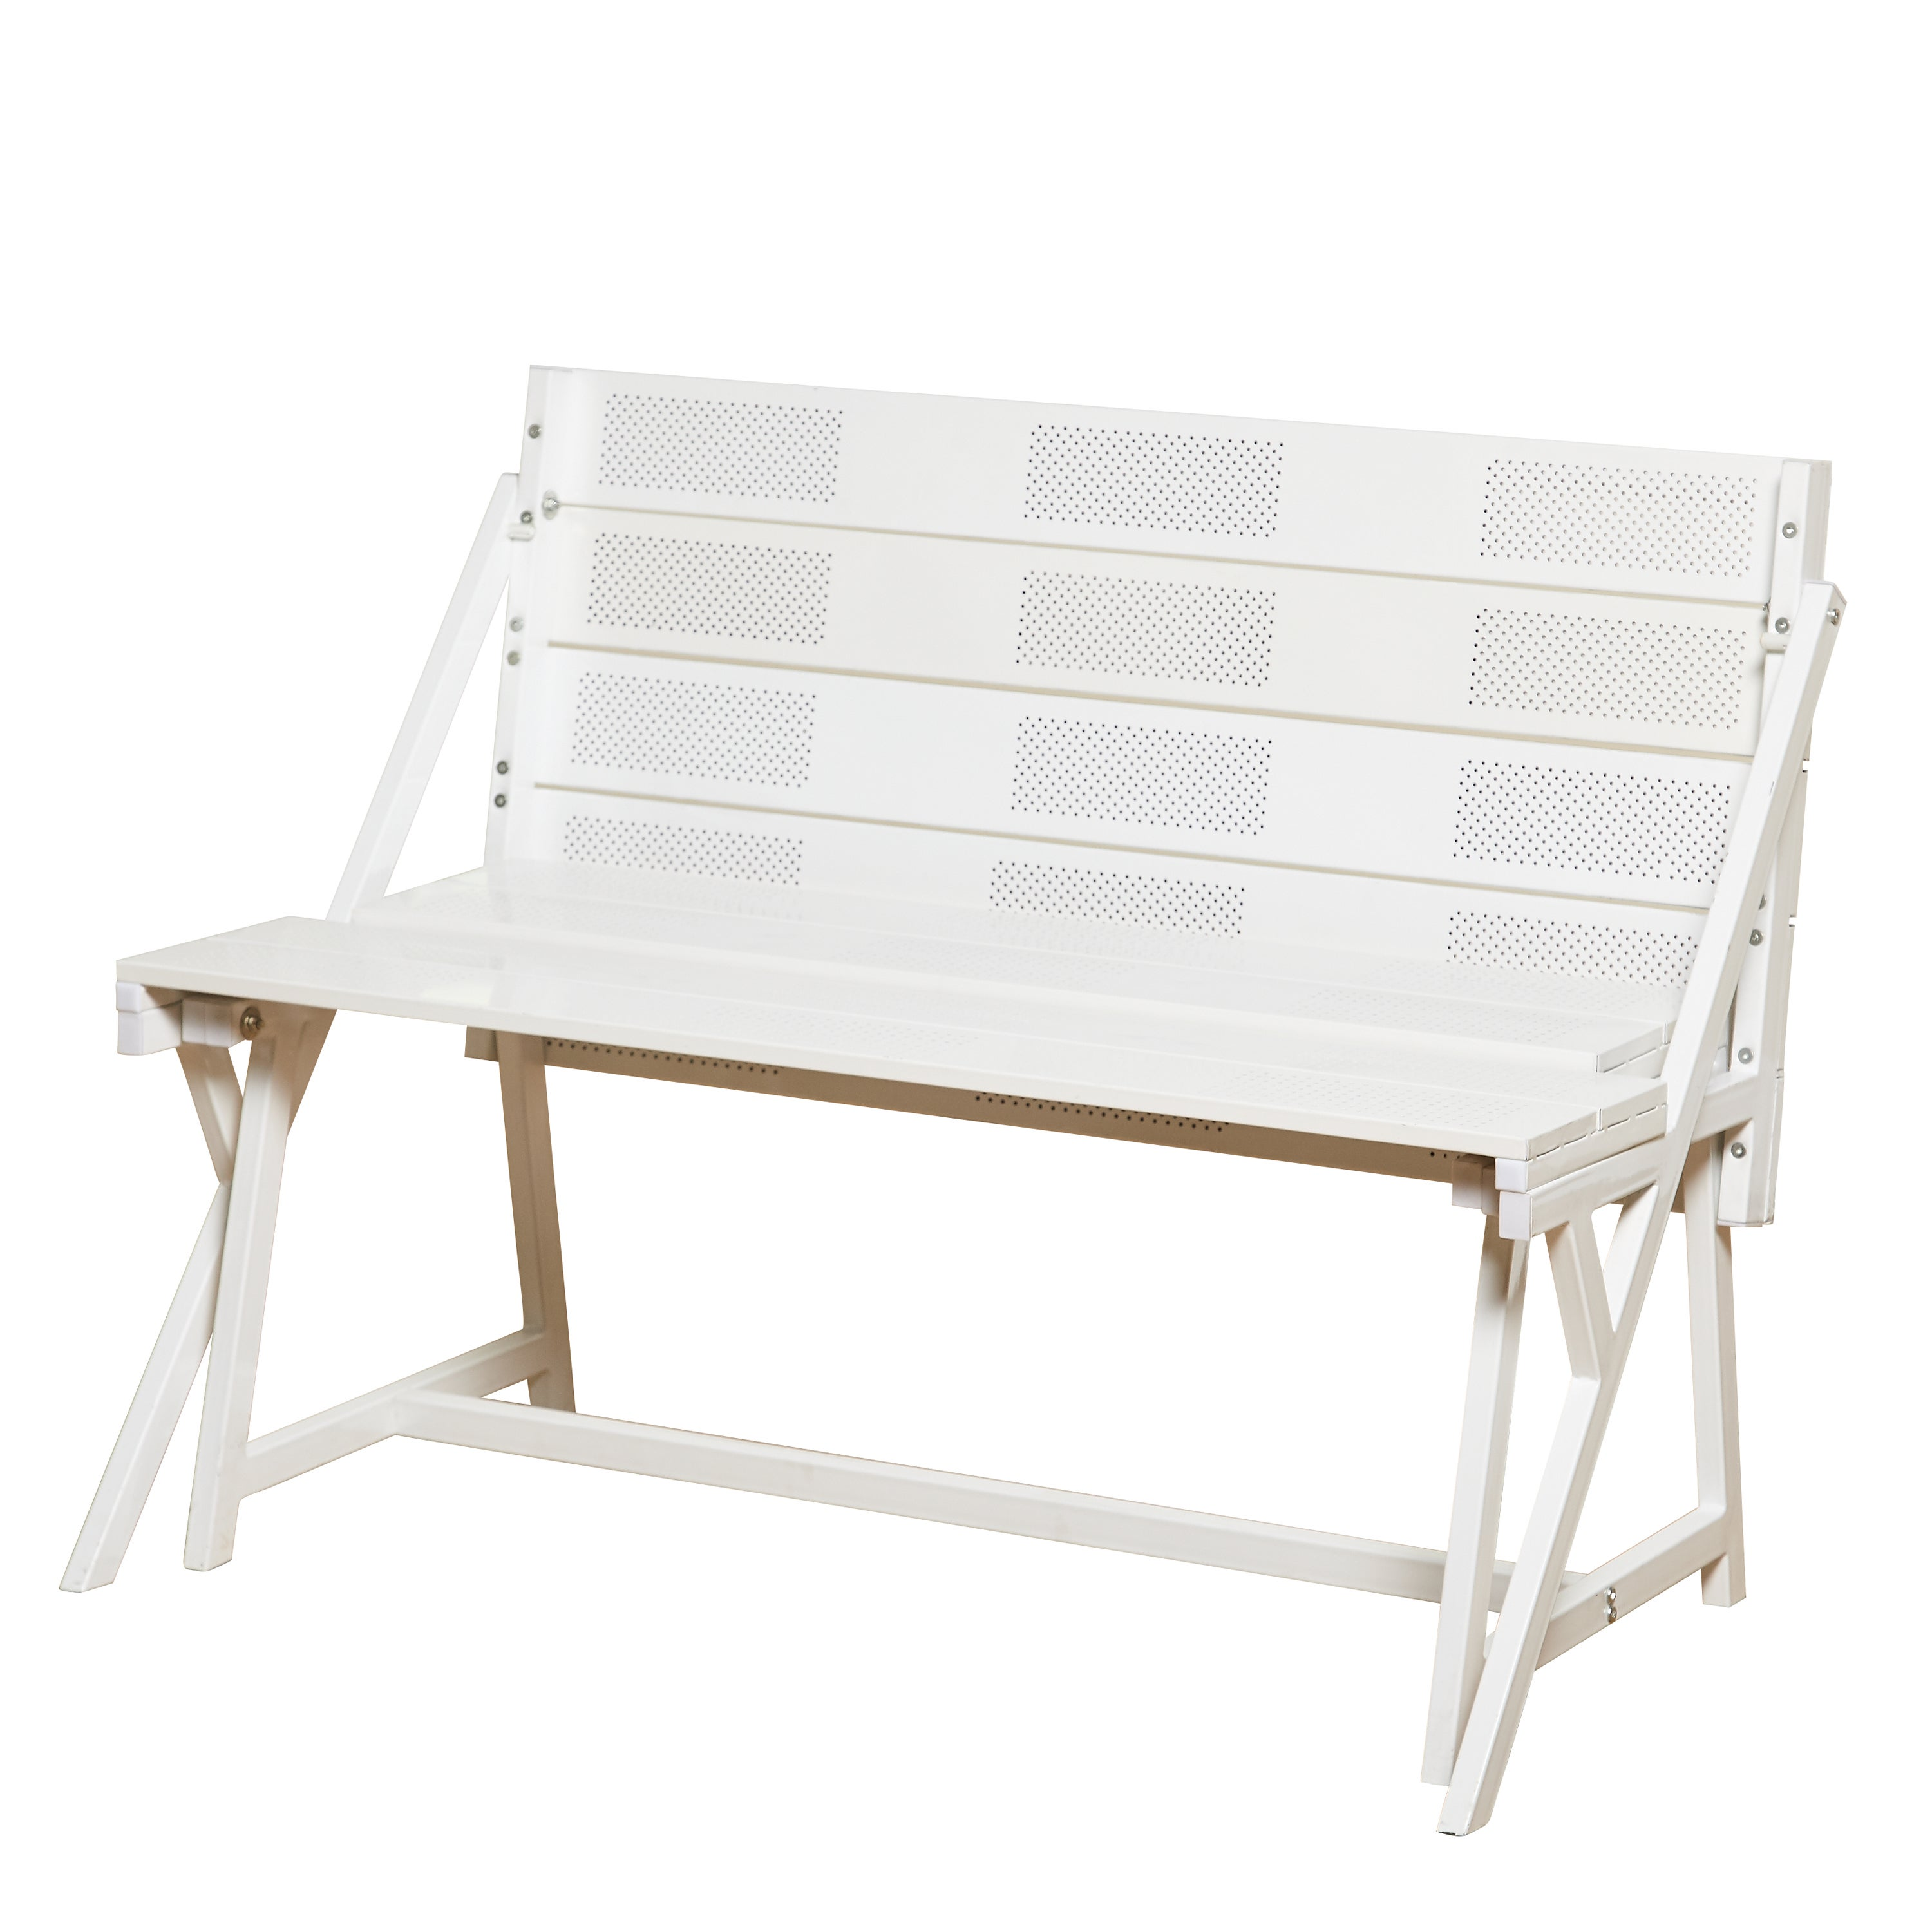 Simple Living Metal Folding Table And Dining Bench Set   Free Shipping  Today   Overstock.com   20694345